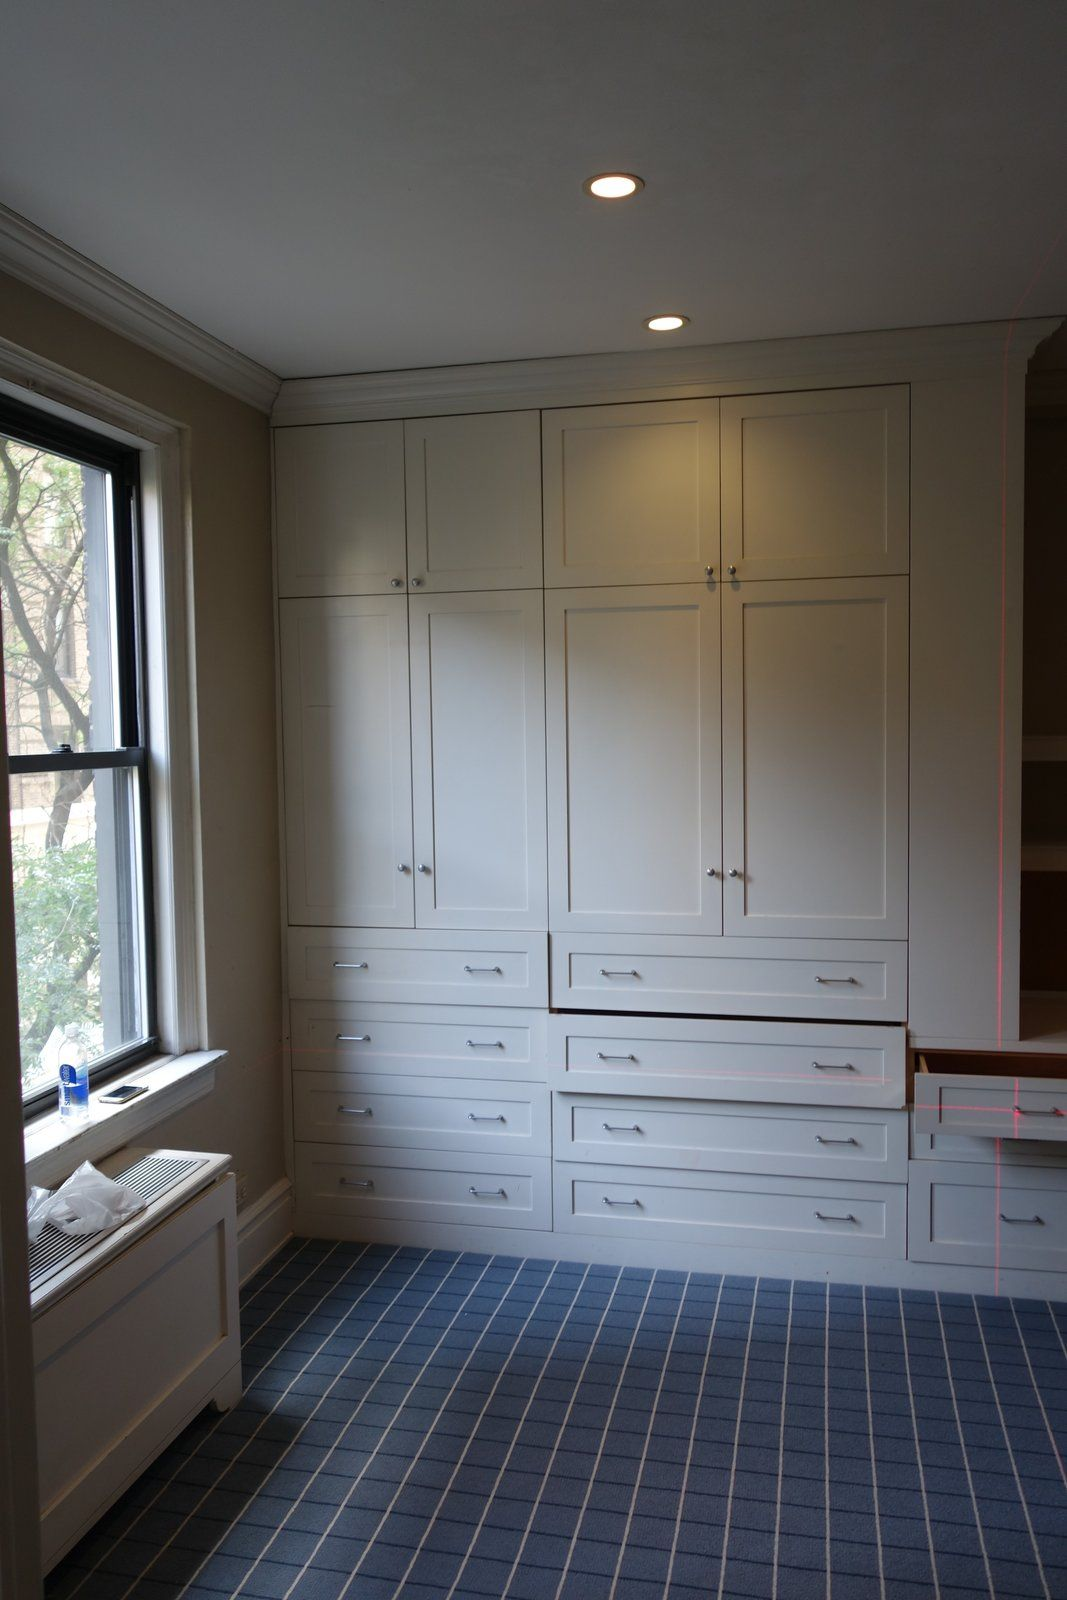 The second bedroom originally featured a large wall unit with lots and lots of storage